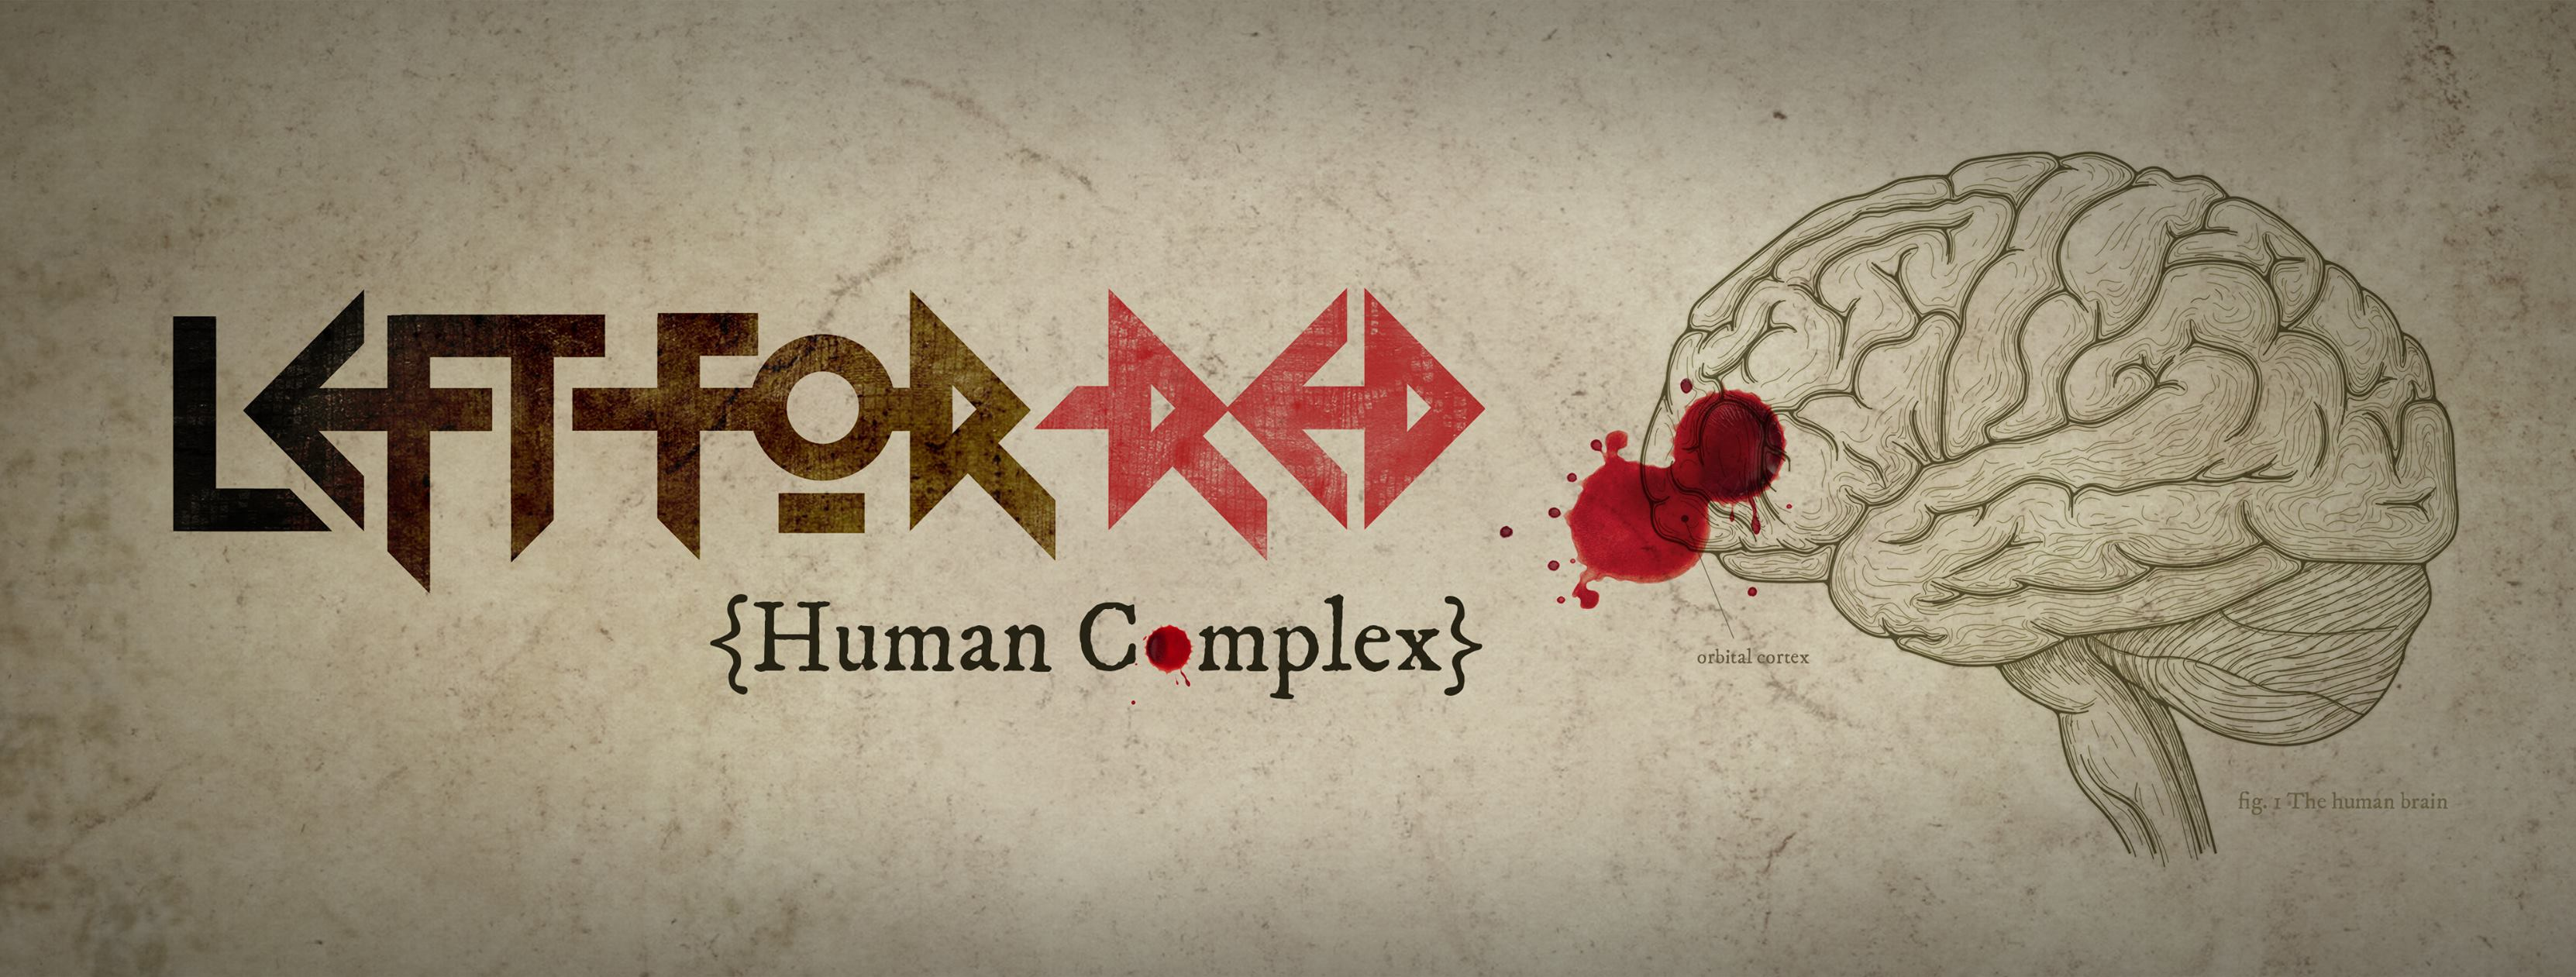 New LFR Album  - Human Complex out now